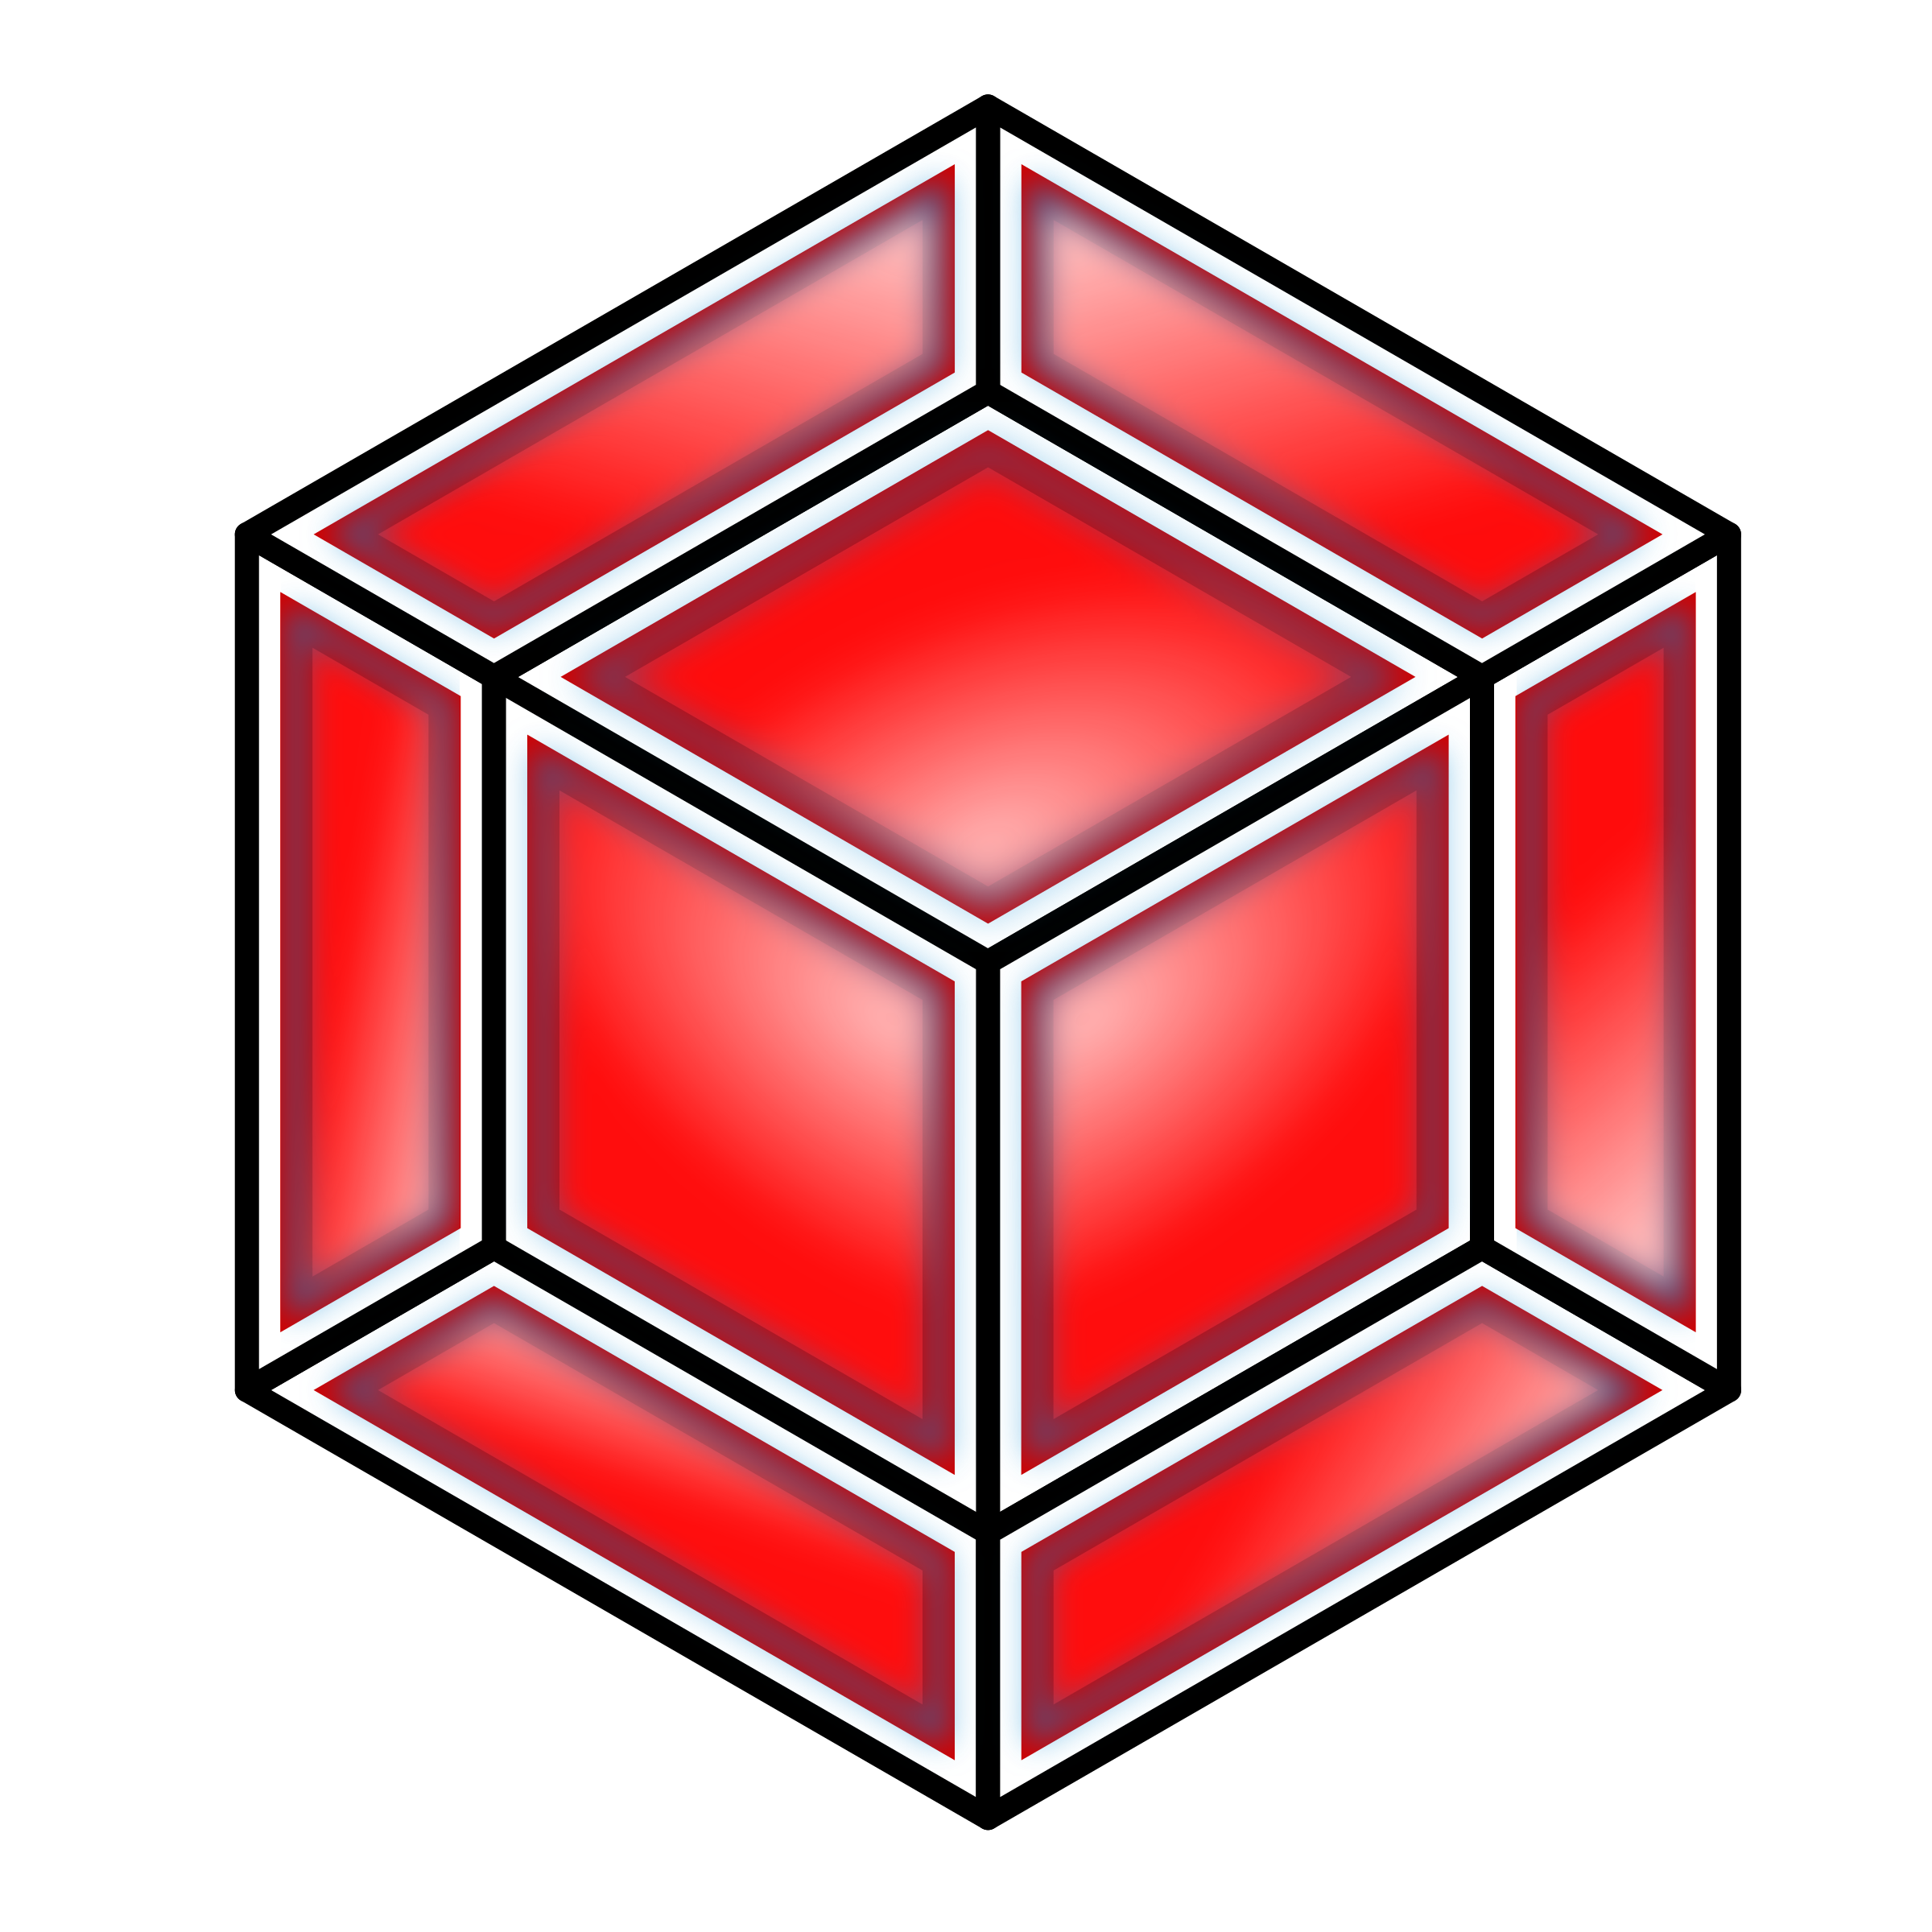 Red cube png. Hyper icons free and